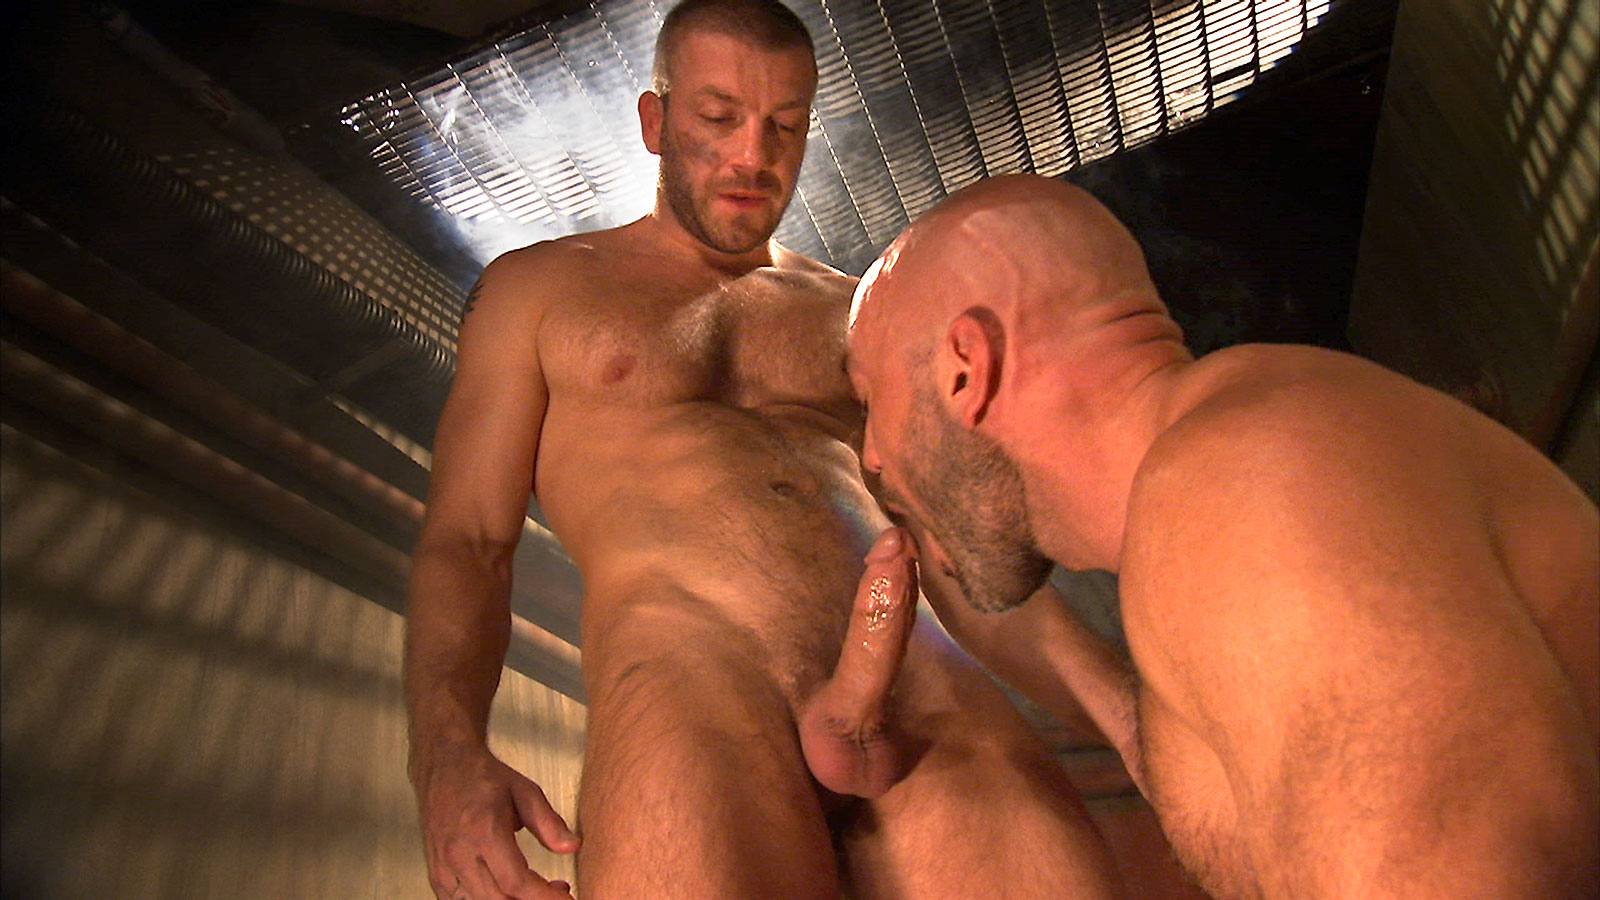 TitanMen Exclusives Jesse Jackman and Hunter Marx - Surveillance - Scene 1